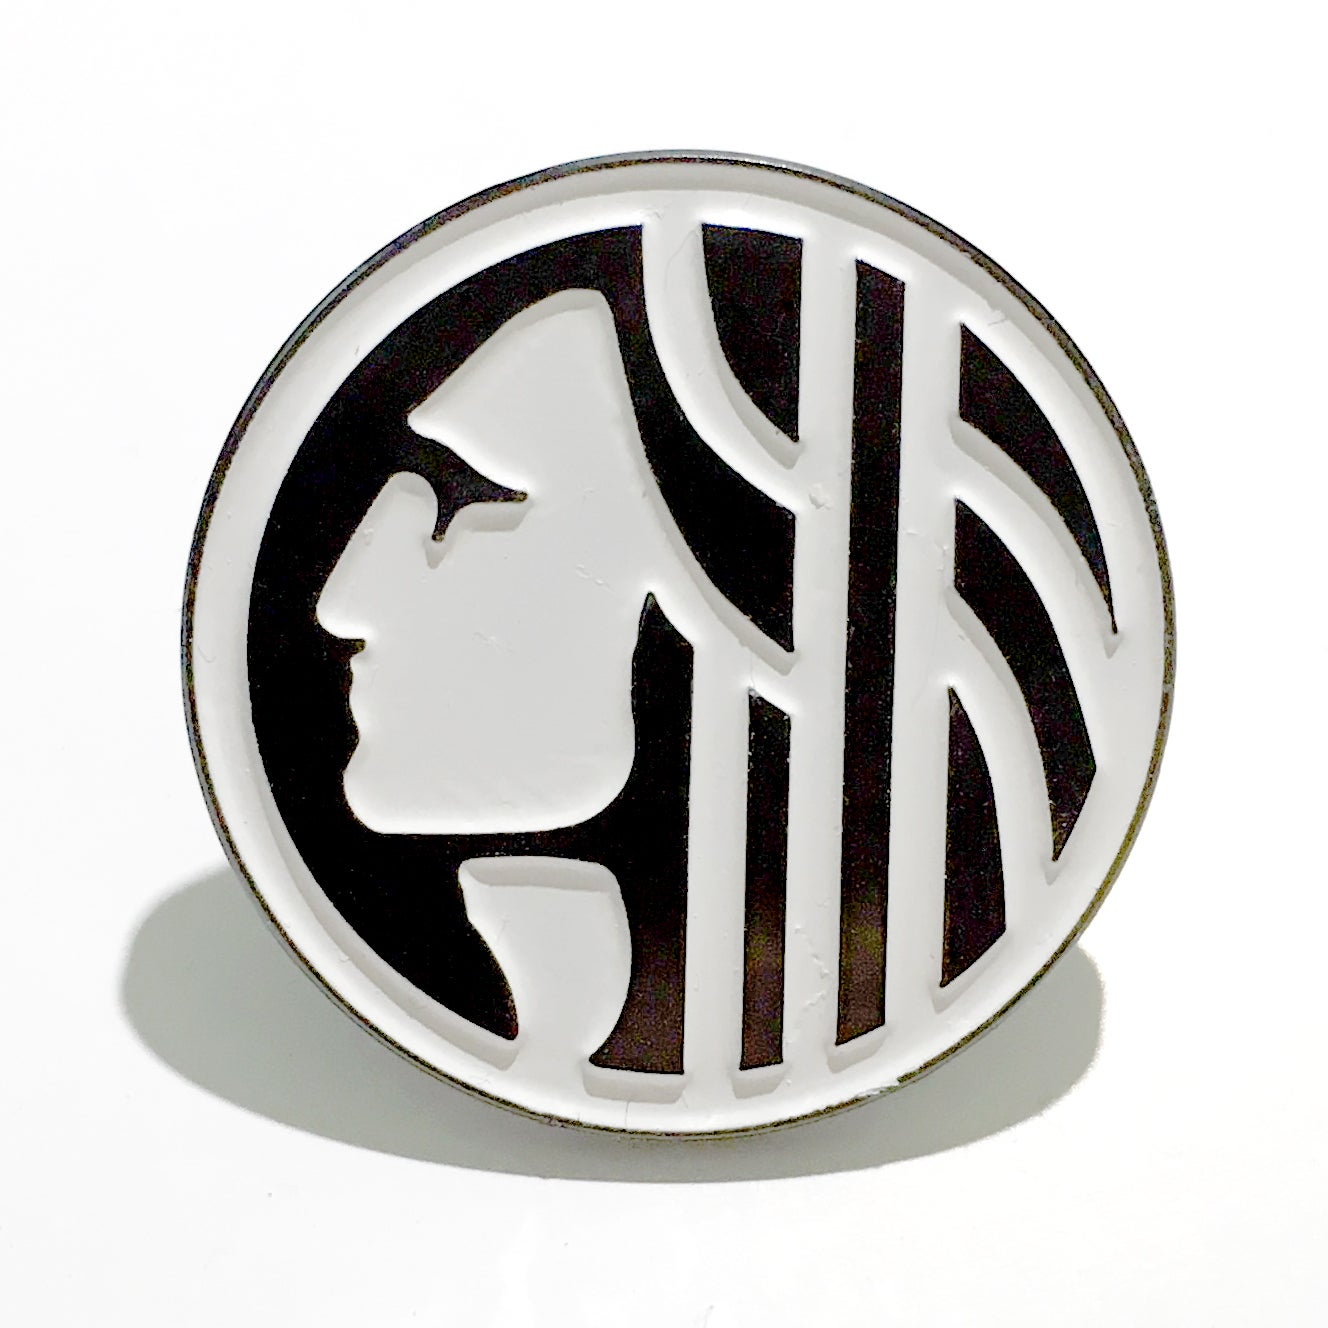 Image of Chief Seattle enamel pin (round)